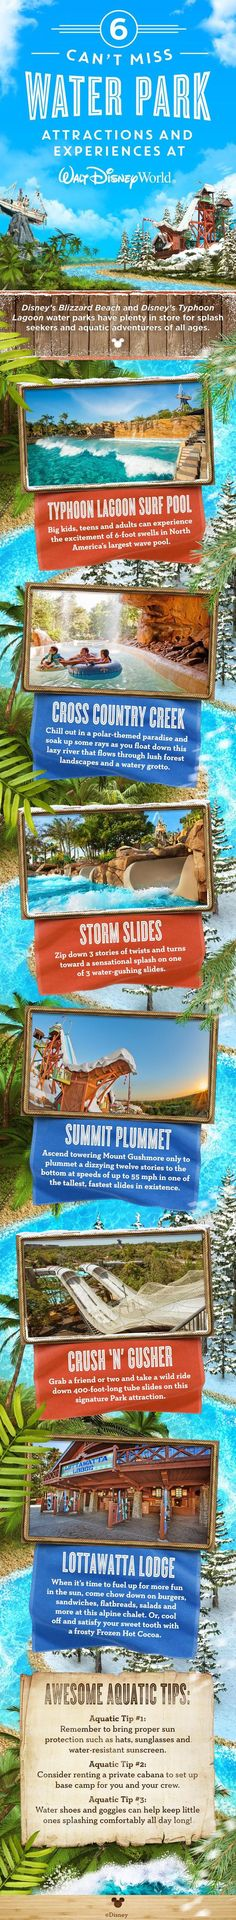 Discover why no Walt Disney World family vacation is complete without a visit to Disney's Typhoon Lagoon and Disney's Blizzard Beach! From serene to extreme, there's an experience for everyone.